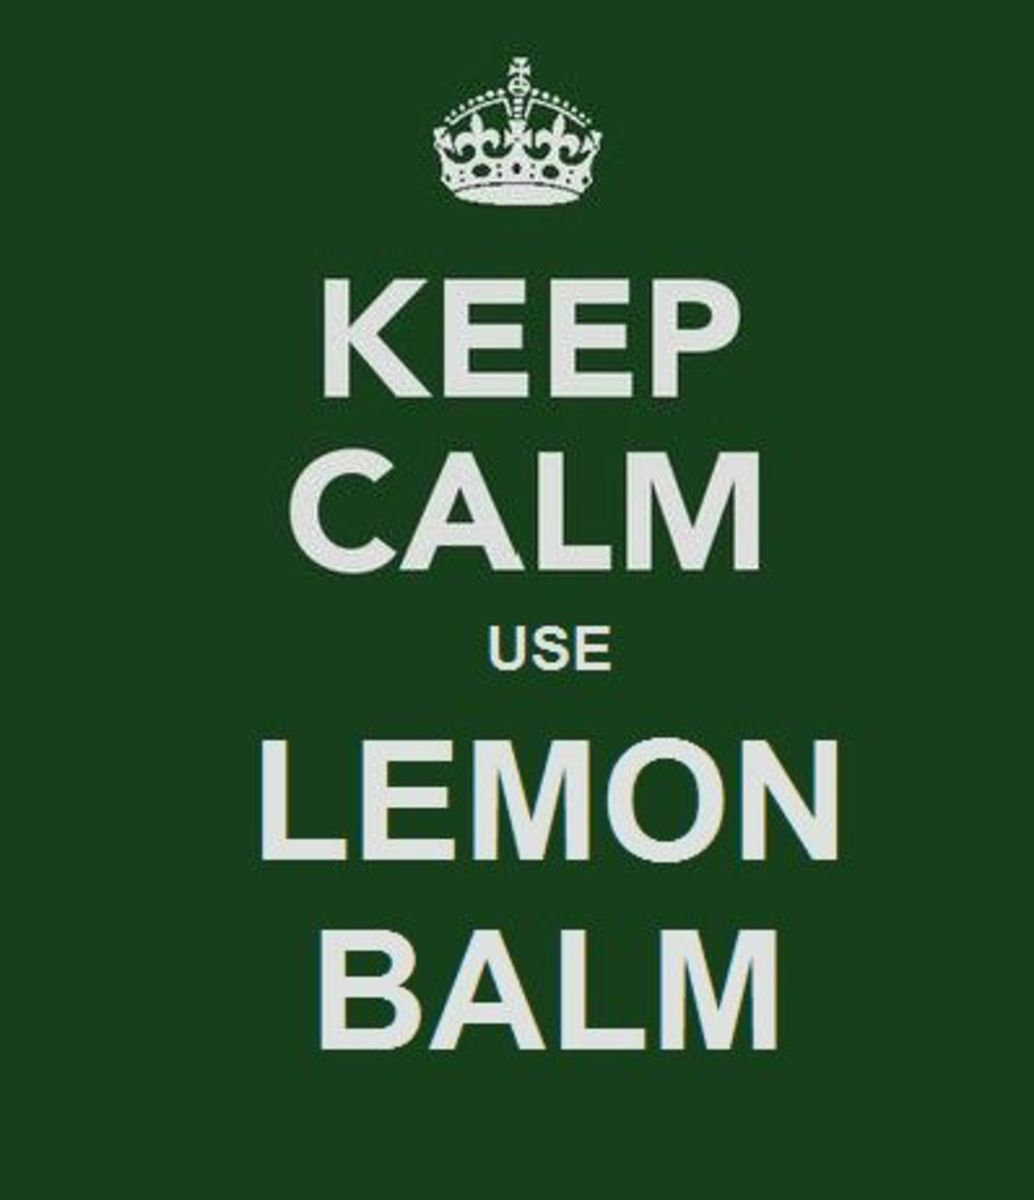 Natural Cures and Dr. Oz...The Lemon Balm Fiasco